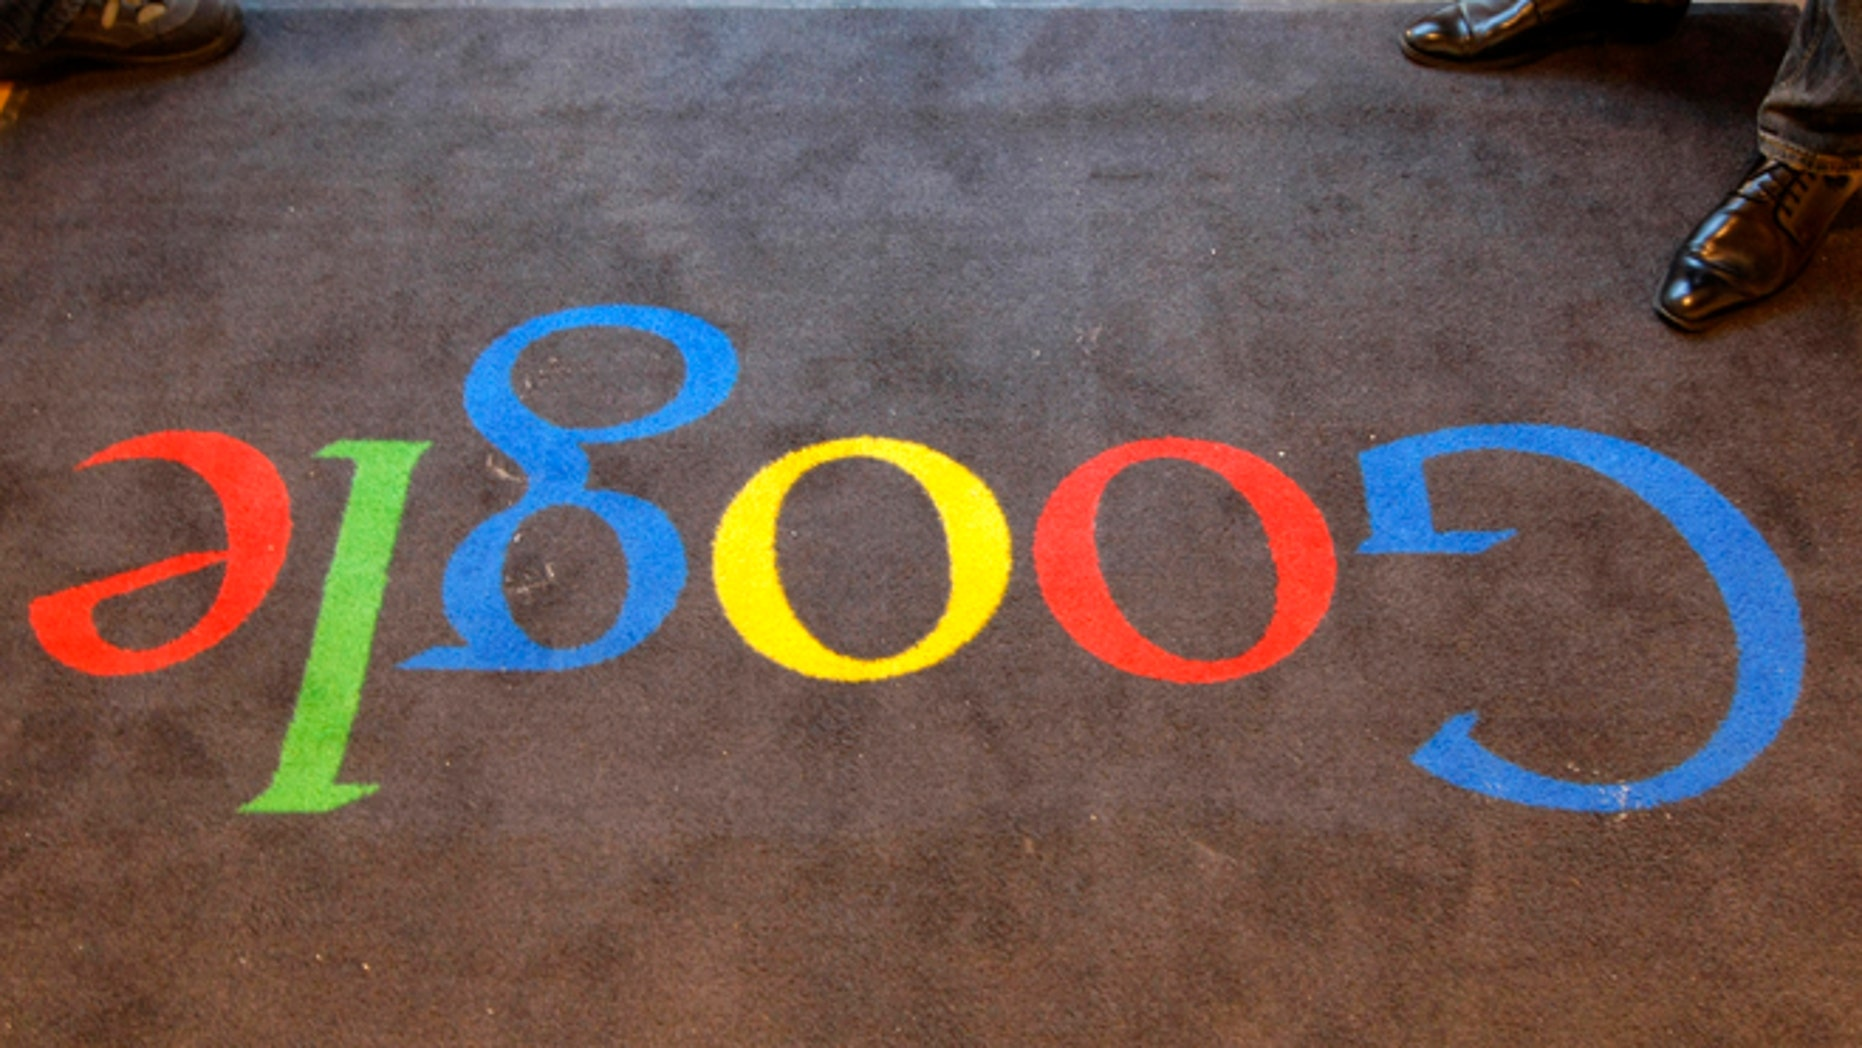 The Google logo is seen on the carpet at Google France offices, in Paris in this 2011 photo.